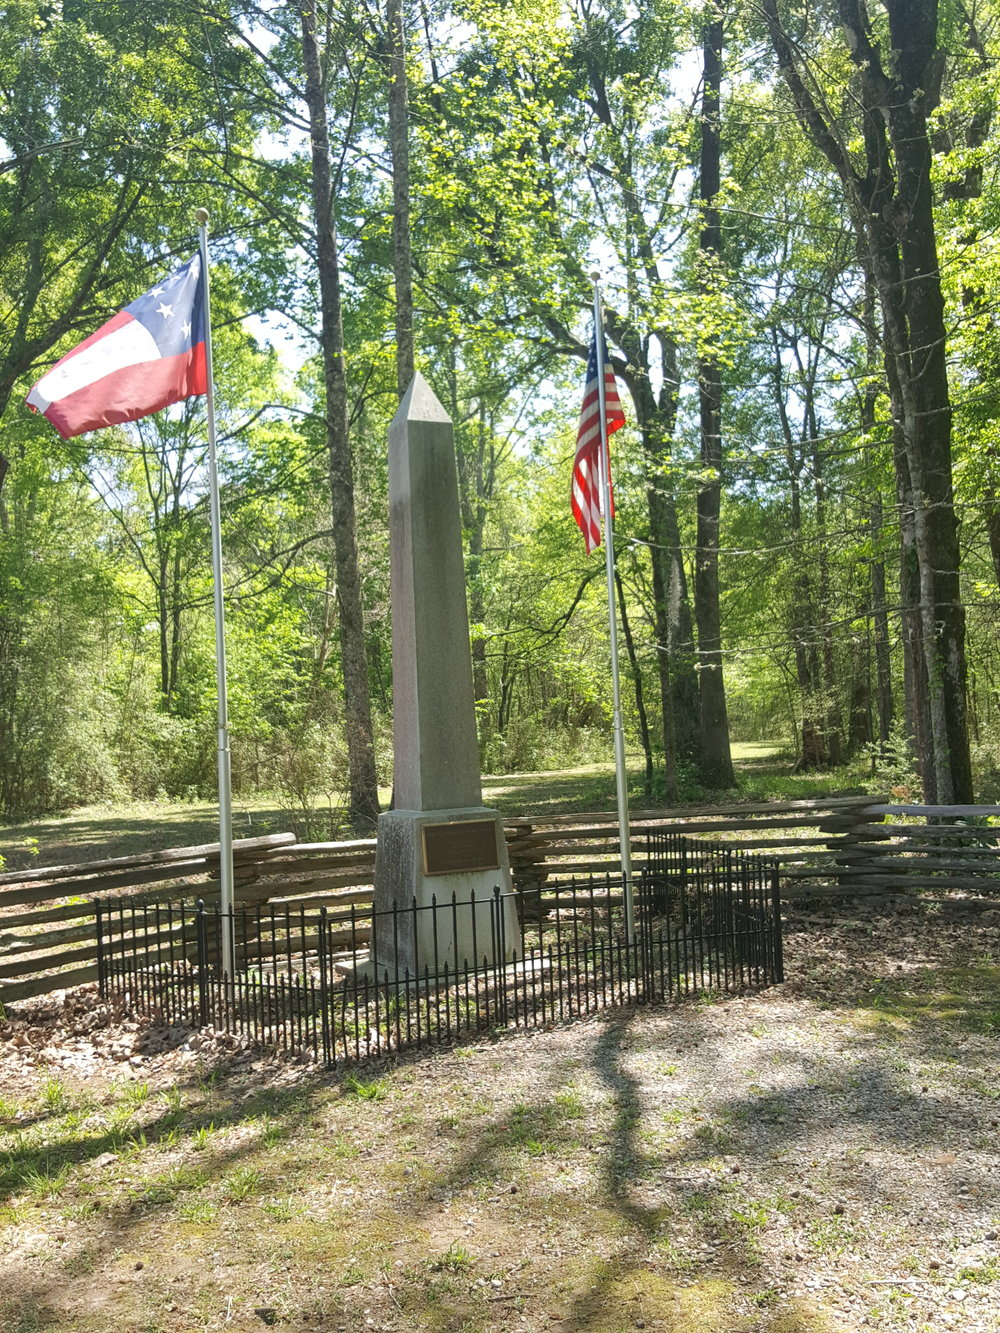 The site of the grave where one Union and one Confederate soldier were buried together in the same coffin at Port Hudson. Let's just say they do not rest in peace! Photo: Michelle Tebow